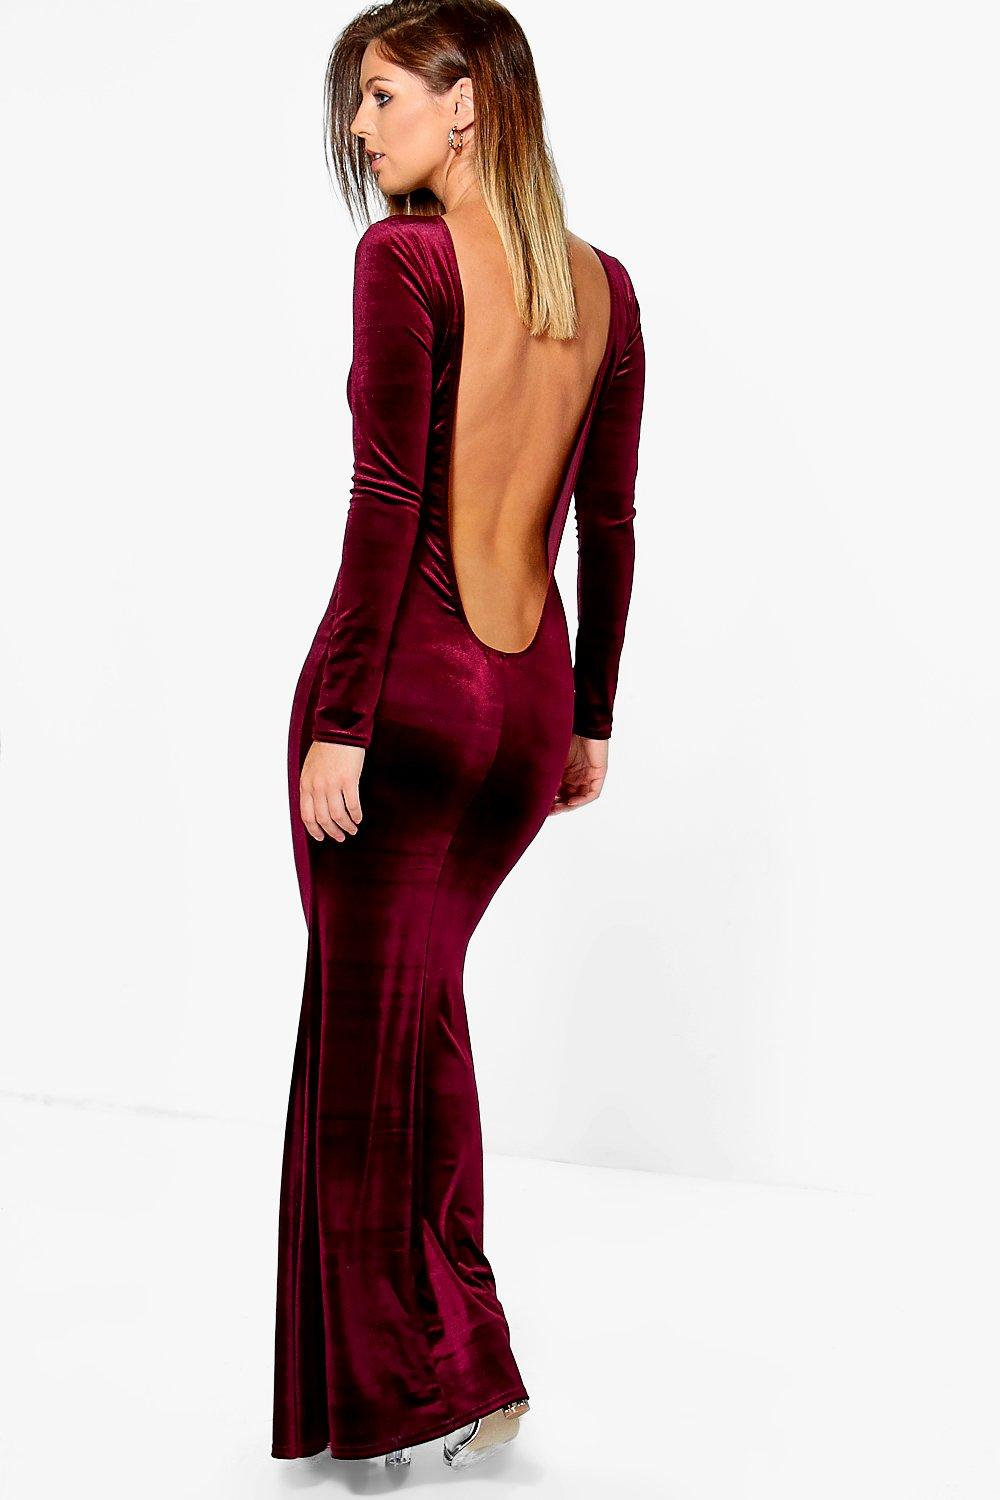 Aleesha Velvet Low Back Fish Tail Maxi Dress